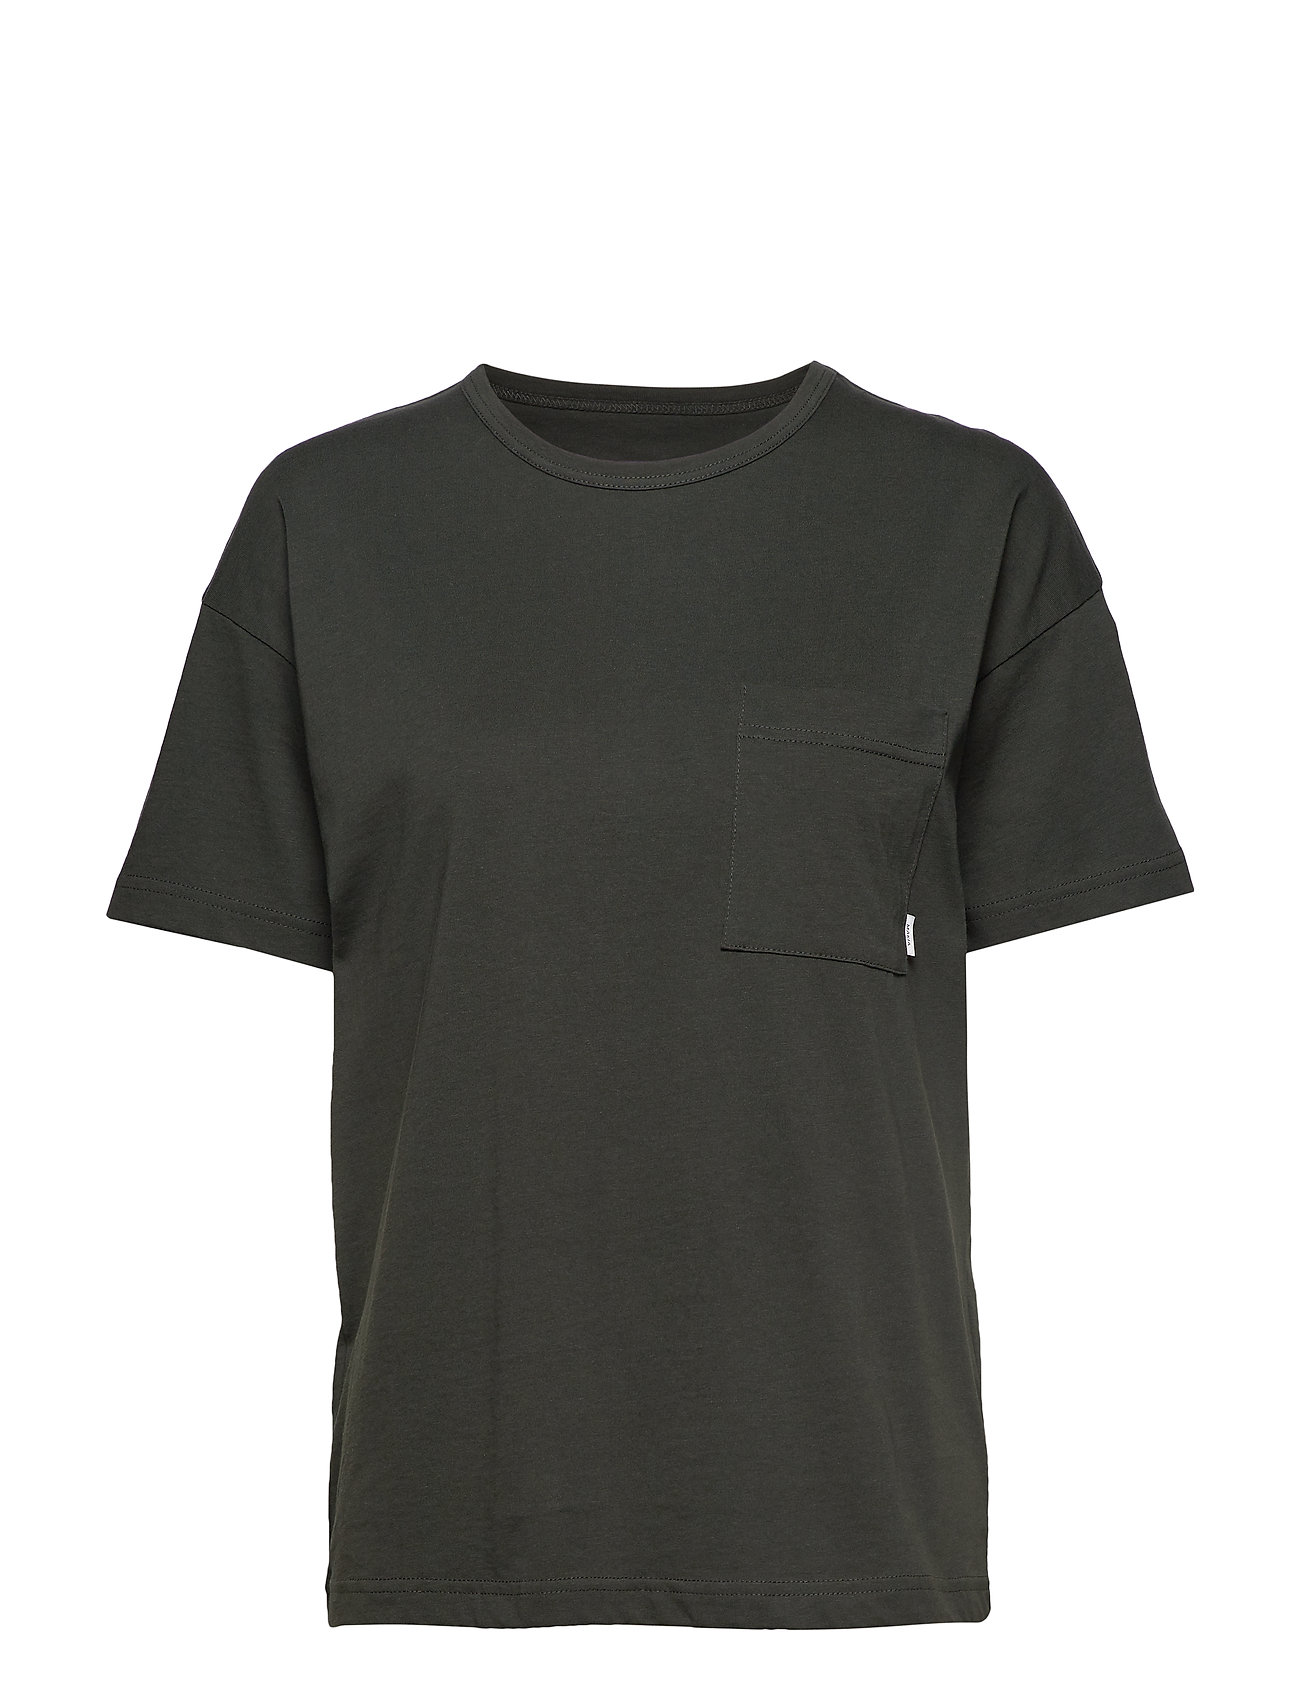 Makia Dusk T-Shirt - DARK GREEN